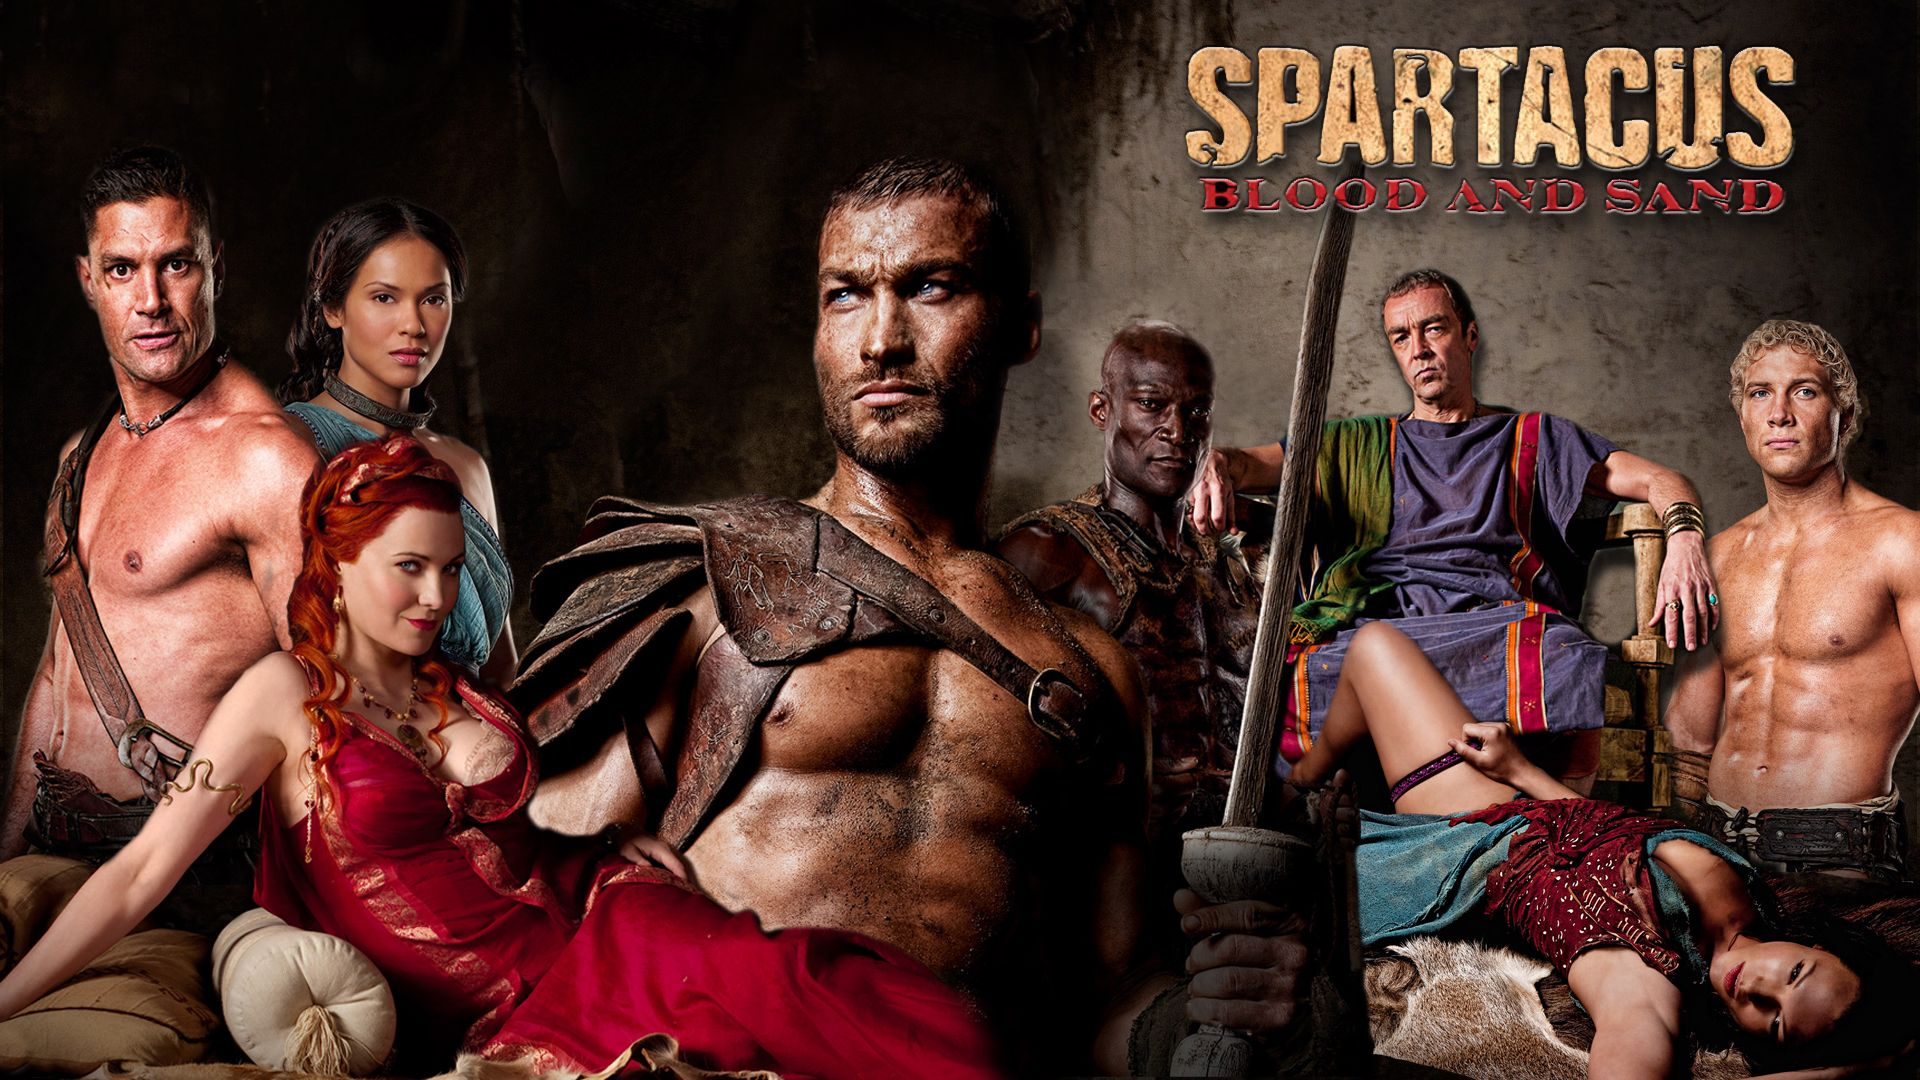 Spartacus - Blood And Sand | Entertaining diversions | Pinterest